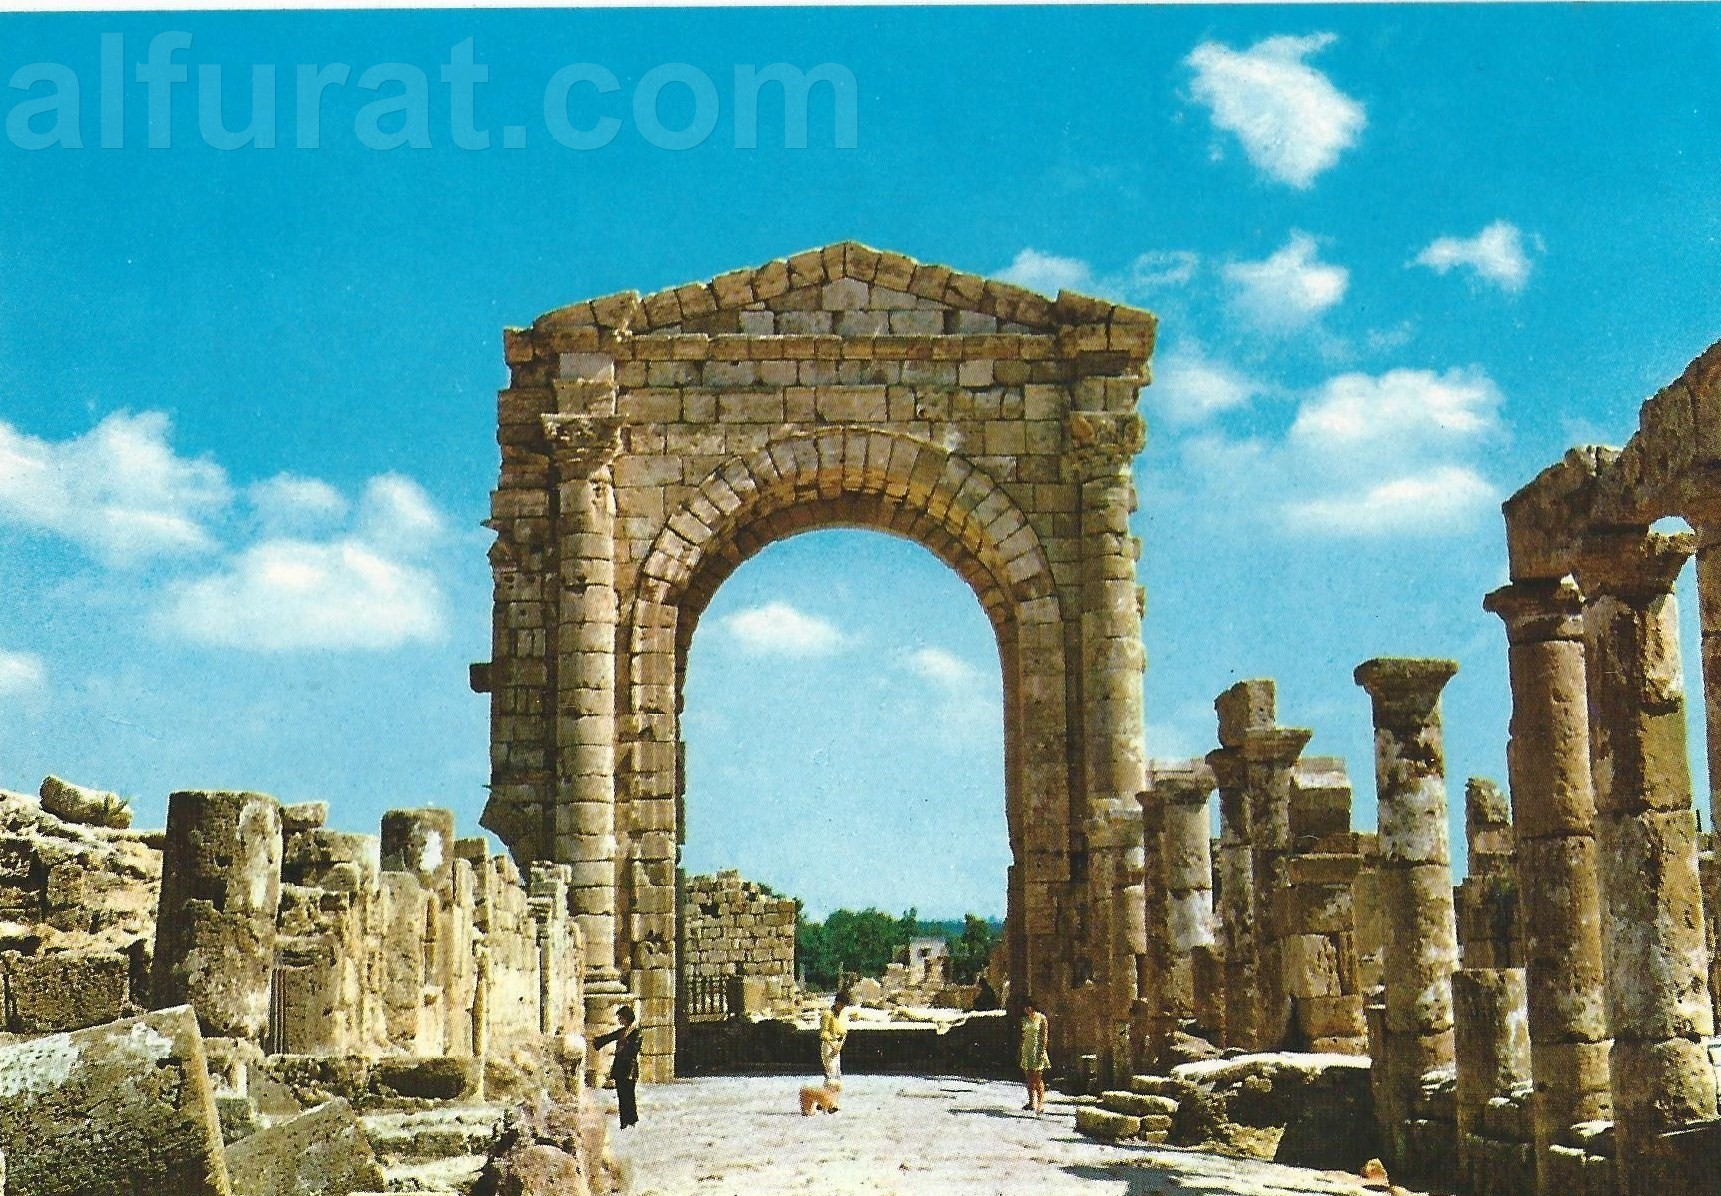 Tyre - The Arch of Triunph at Necropole 528 صور